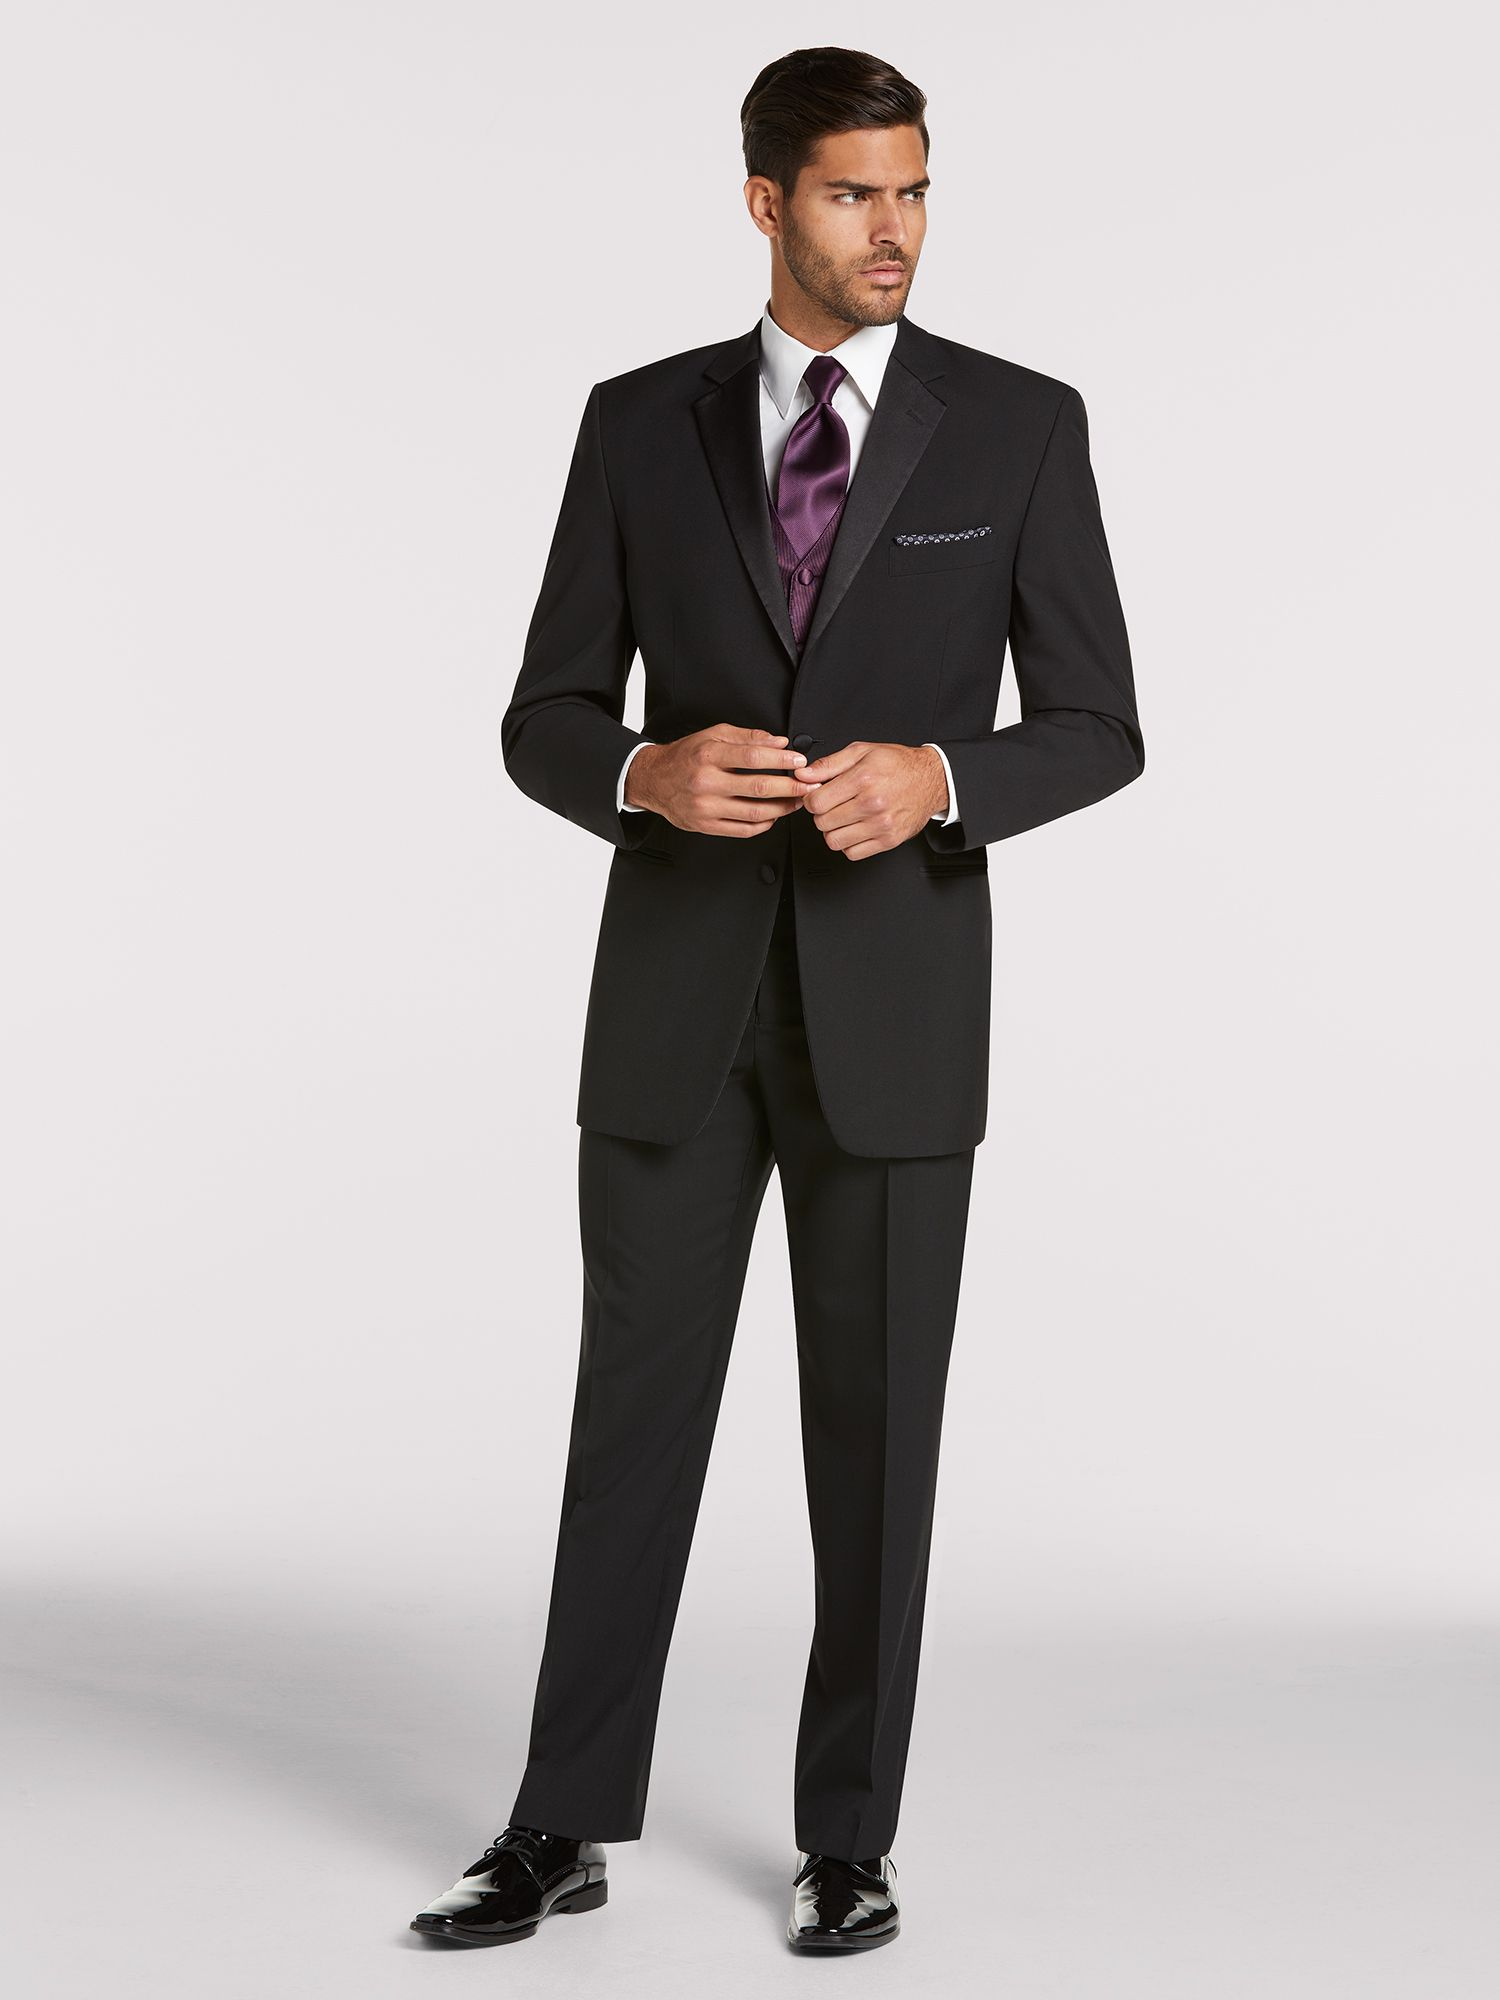 Joseph Und Joseph Joseph Feiss Black Notch Lapel